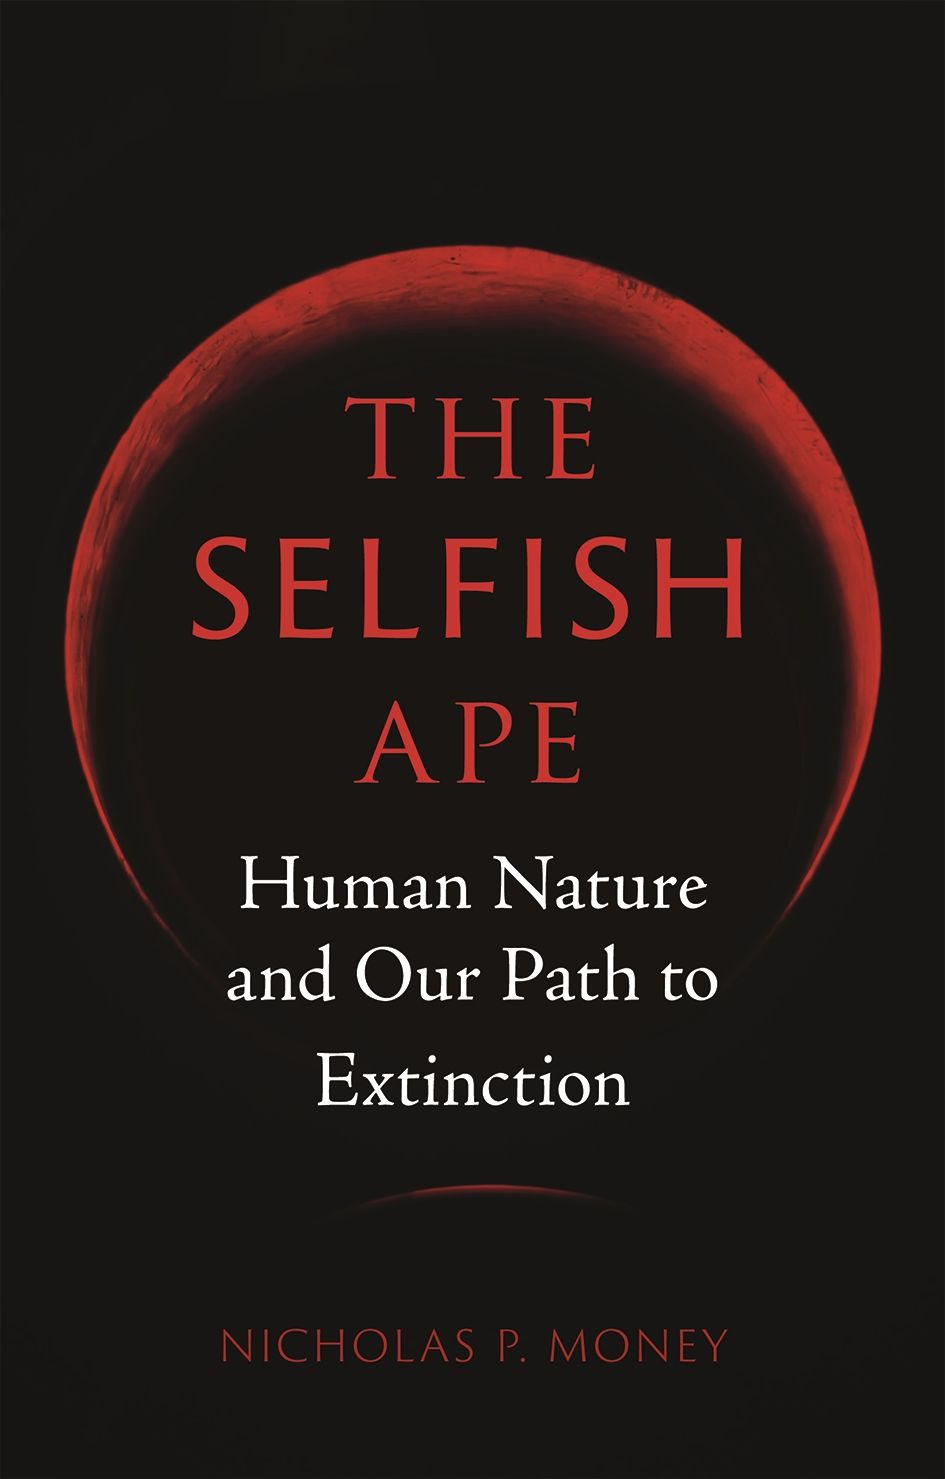 The Selfish Ape: Human Nature and Our Path to Extinction